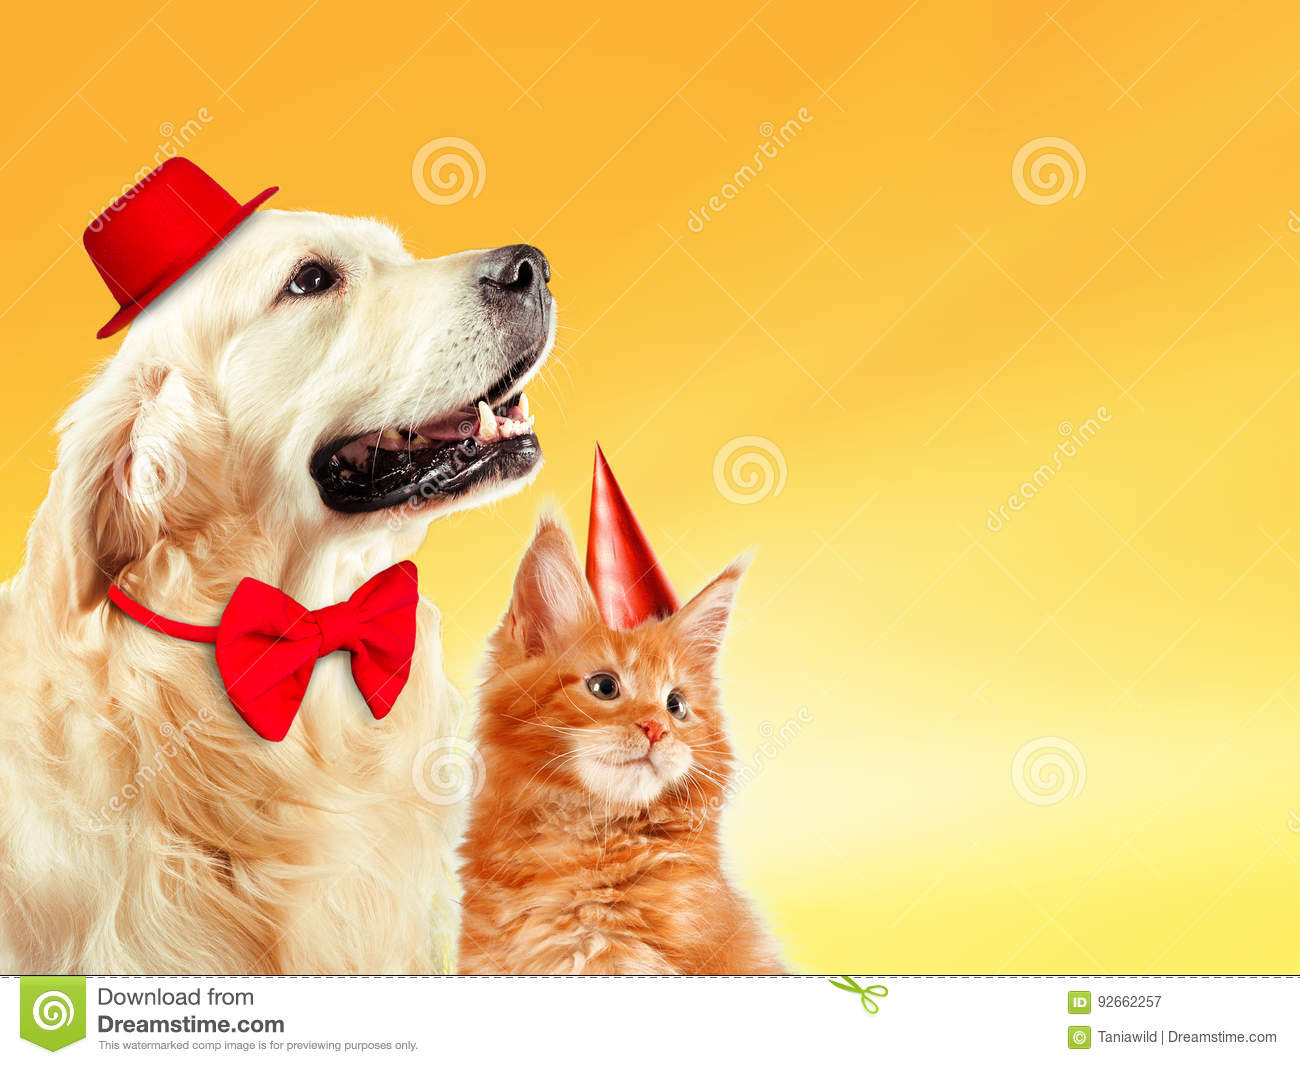 Cat And Dog Together With Birthday Party Hats Maine Coon Kitten Golden Retriever Looks